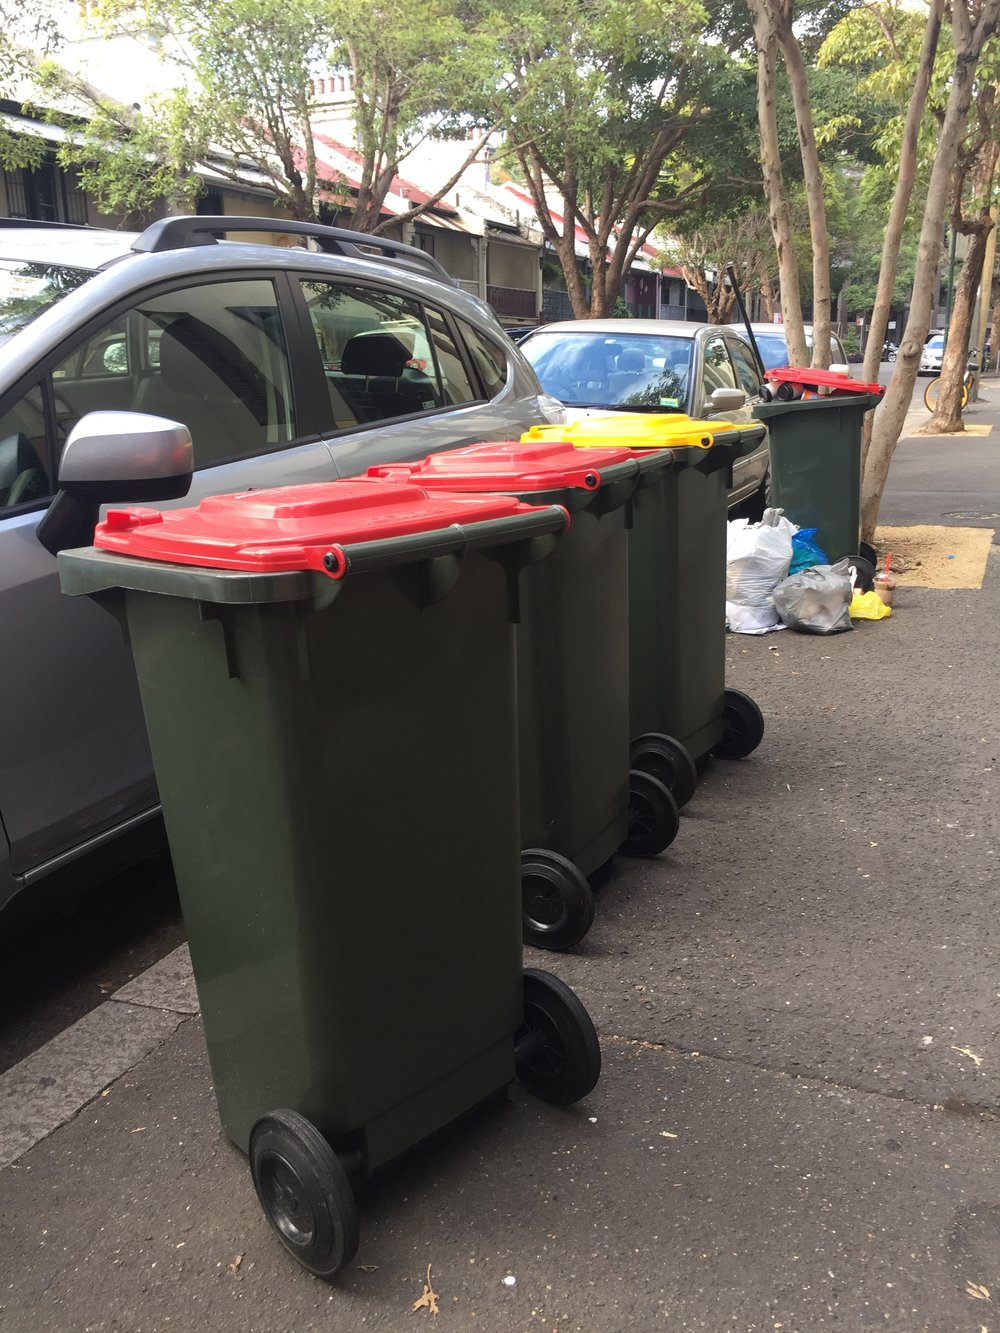 • Larger, 120 litre bins and, in the distance, an over-flowing bin in Chippendale street